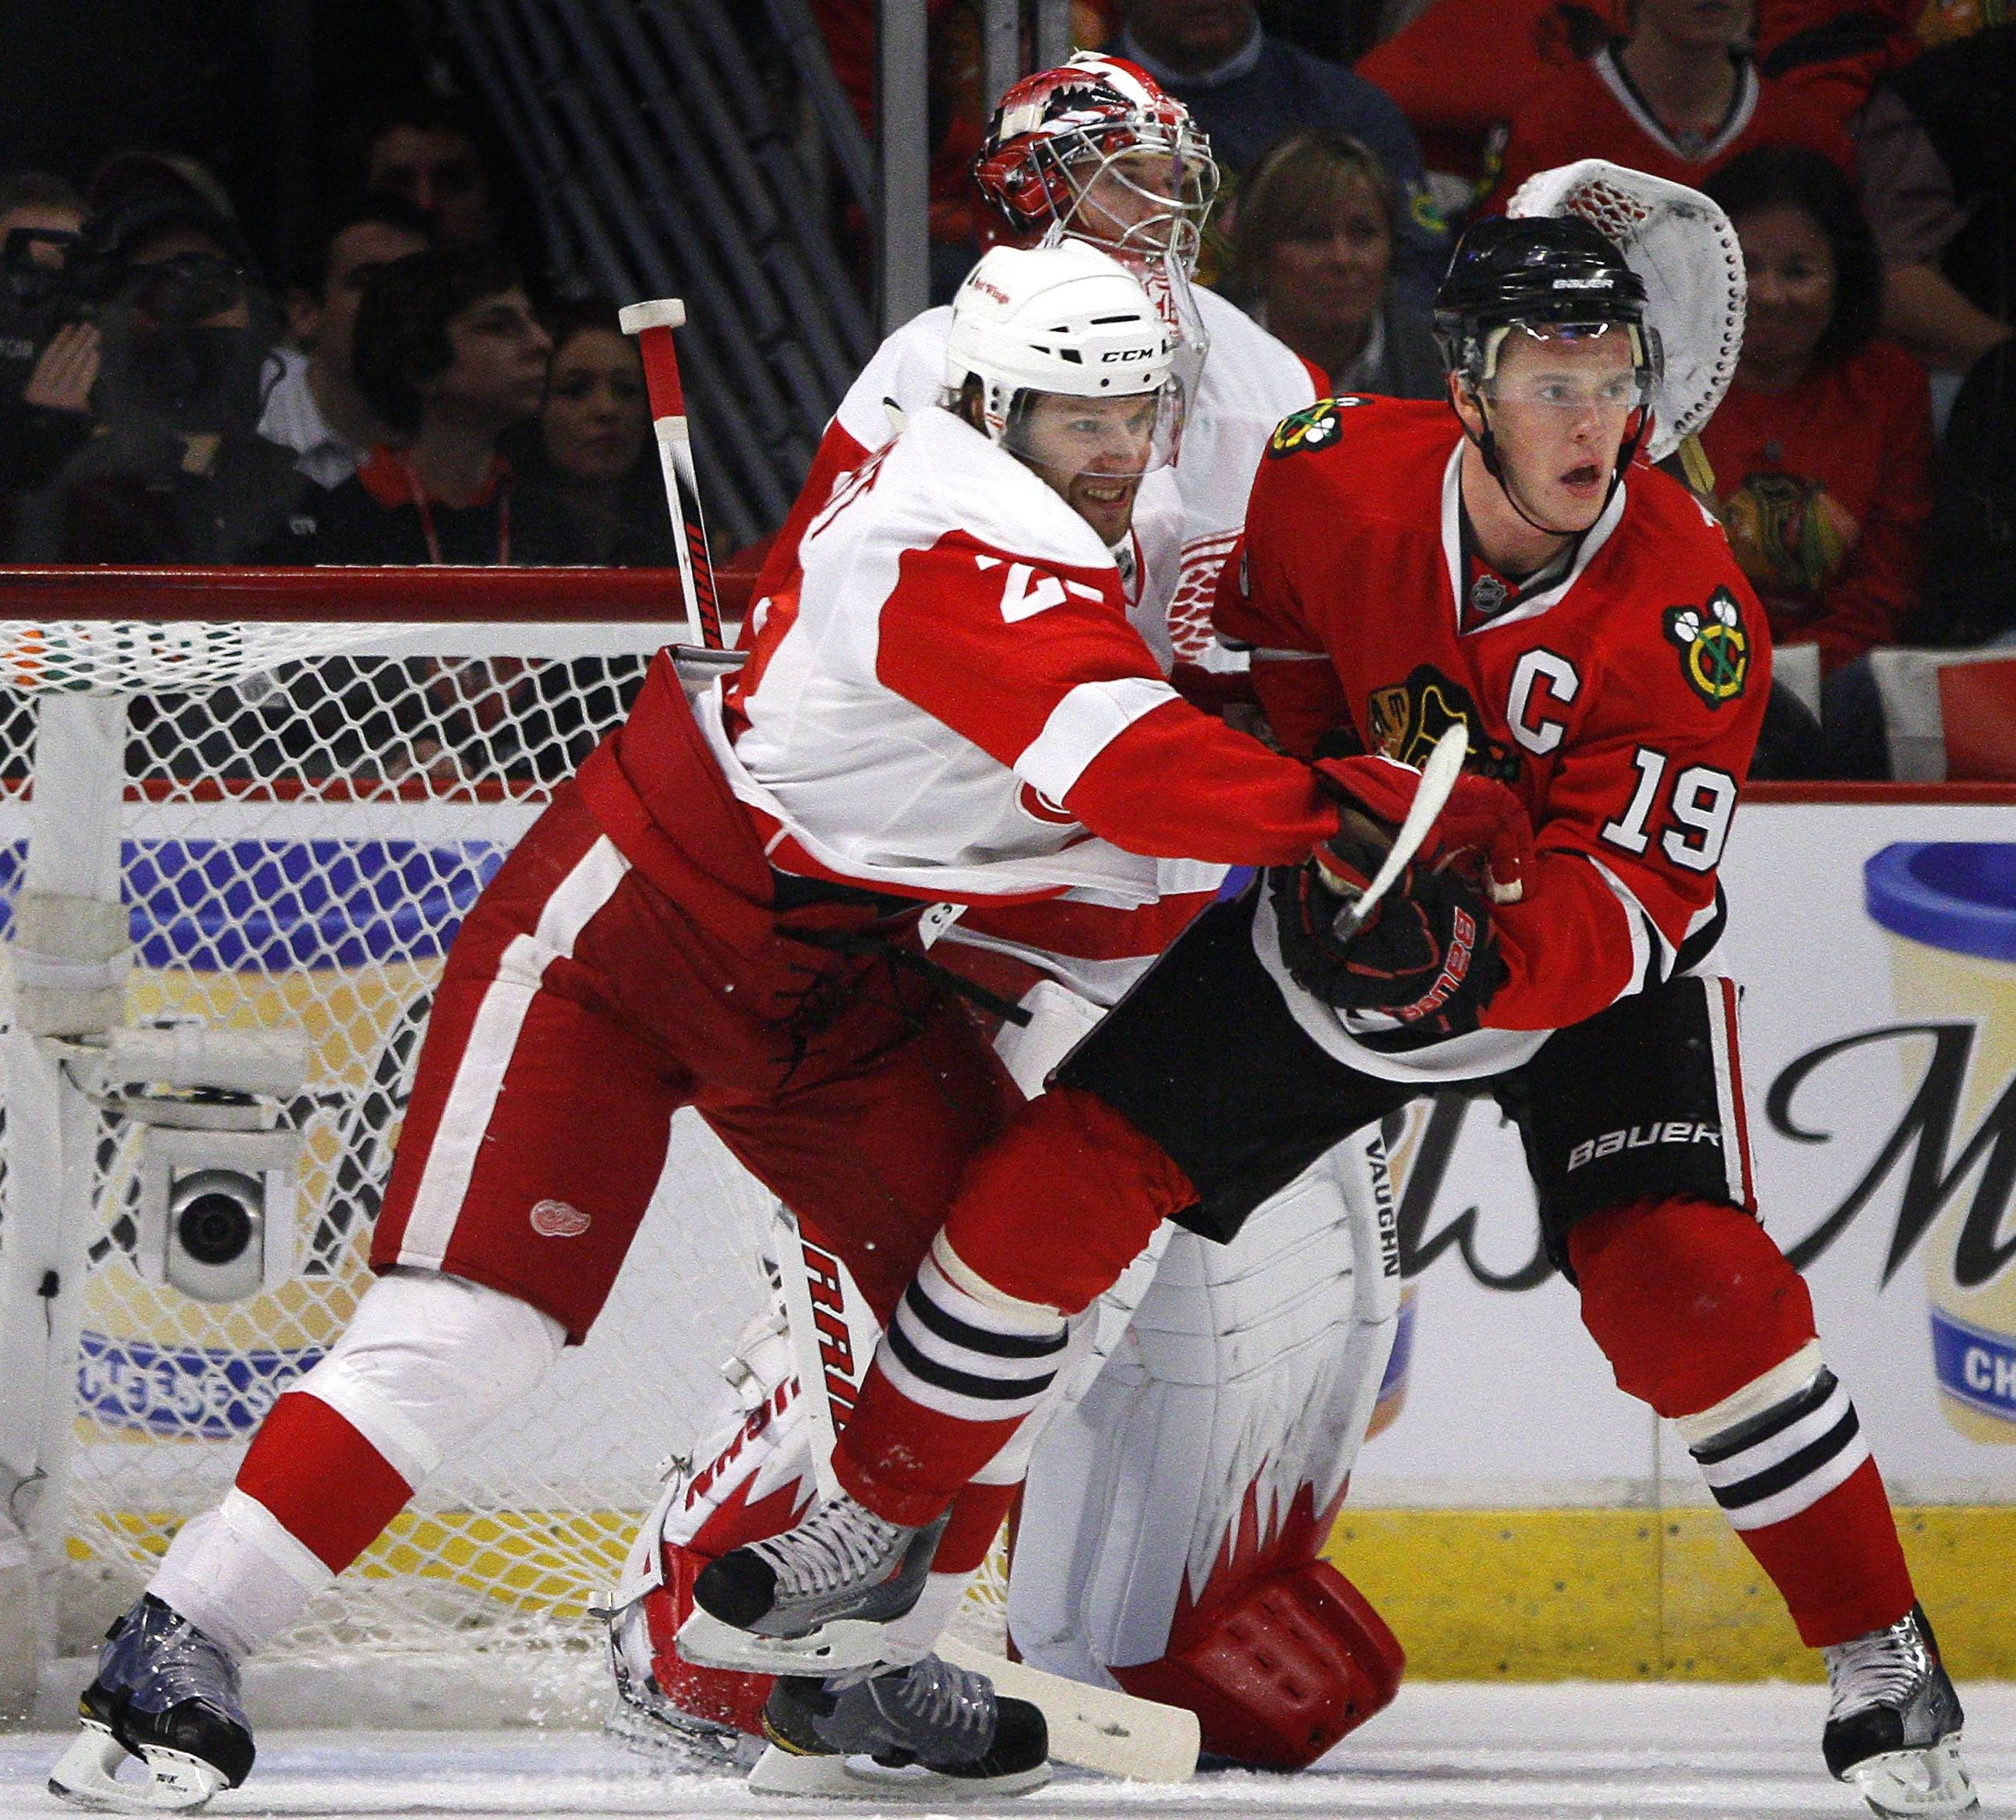 The Red Wings' Brad Stuart, left, tries to keep the Blackhawks' Jonathan Toews, right, from planting in front of Red Wings goalie goalie Jimmy Howard, center, during the first period of an NHL hockey game on Sunday, April 10, 2011.